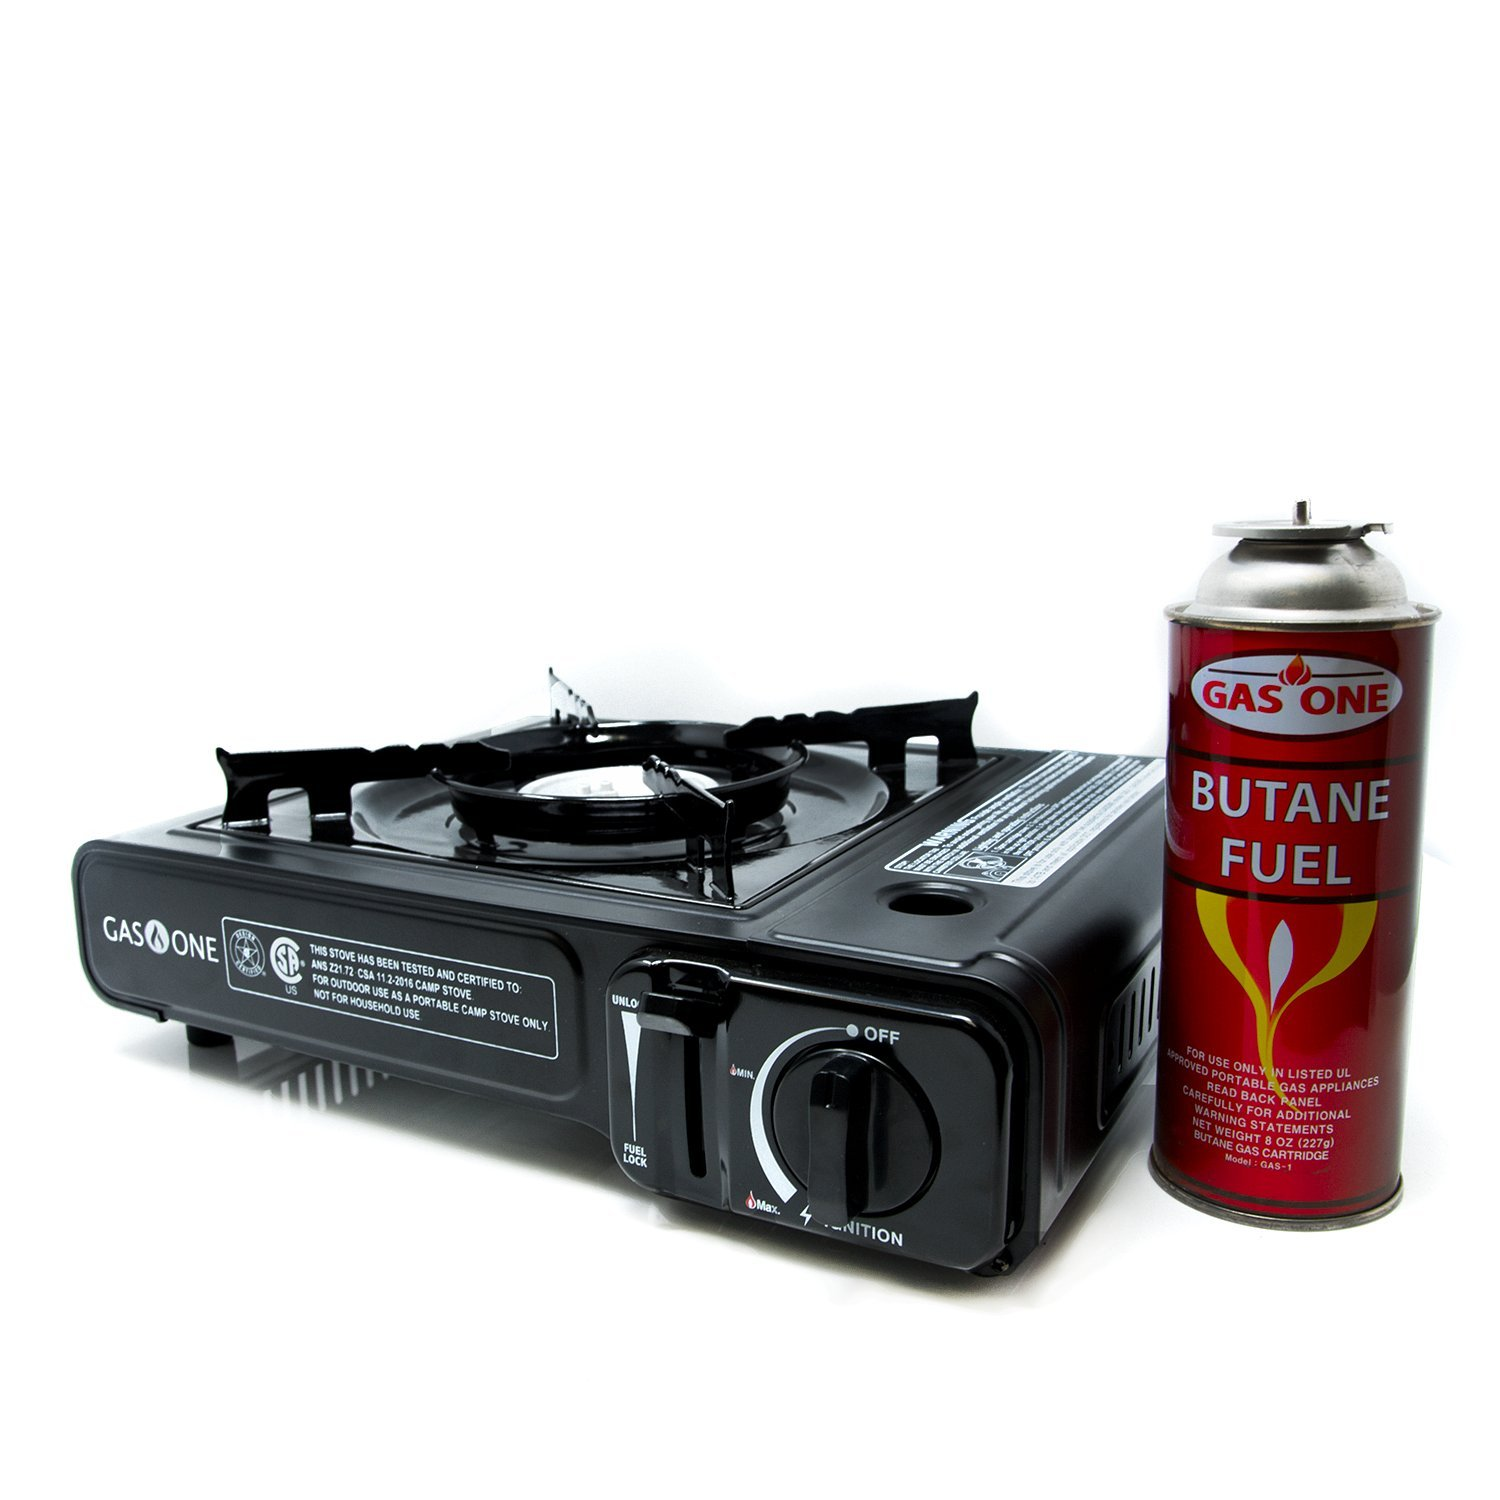 Gas One Gs 3000 Portable Stove With Carrying Case Hi Cook 9 000 Btu Csa Approved Black Camping Stoves Sports Outdoors